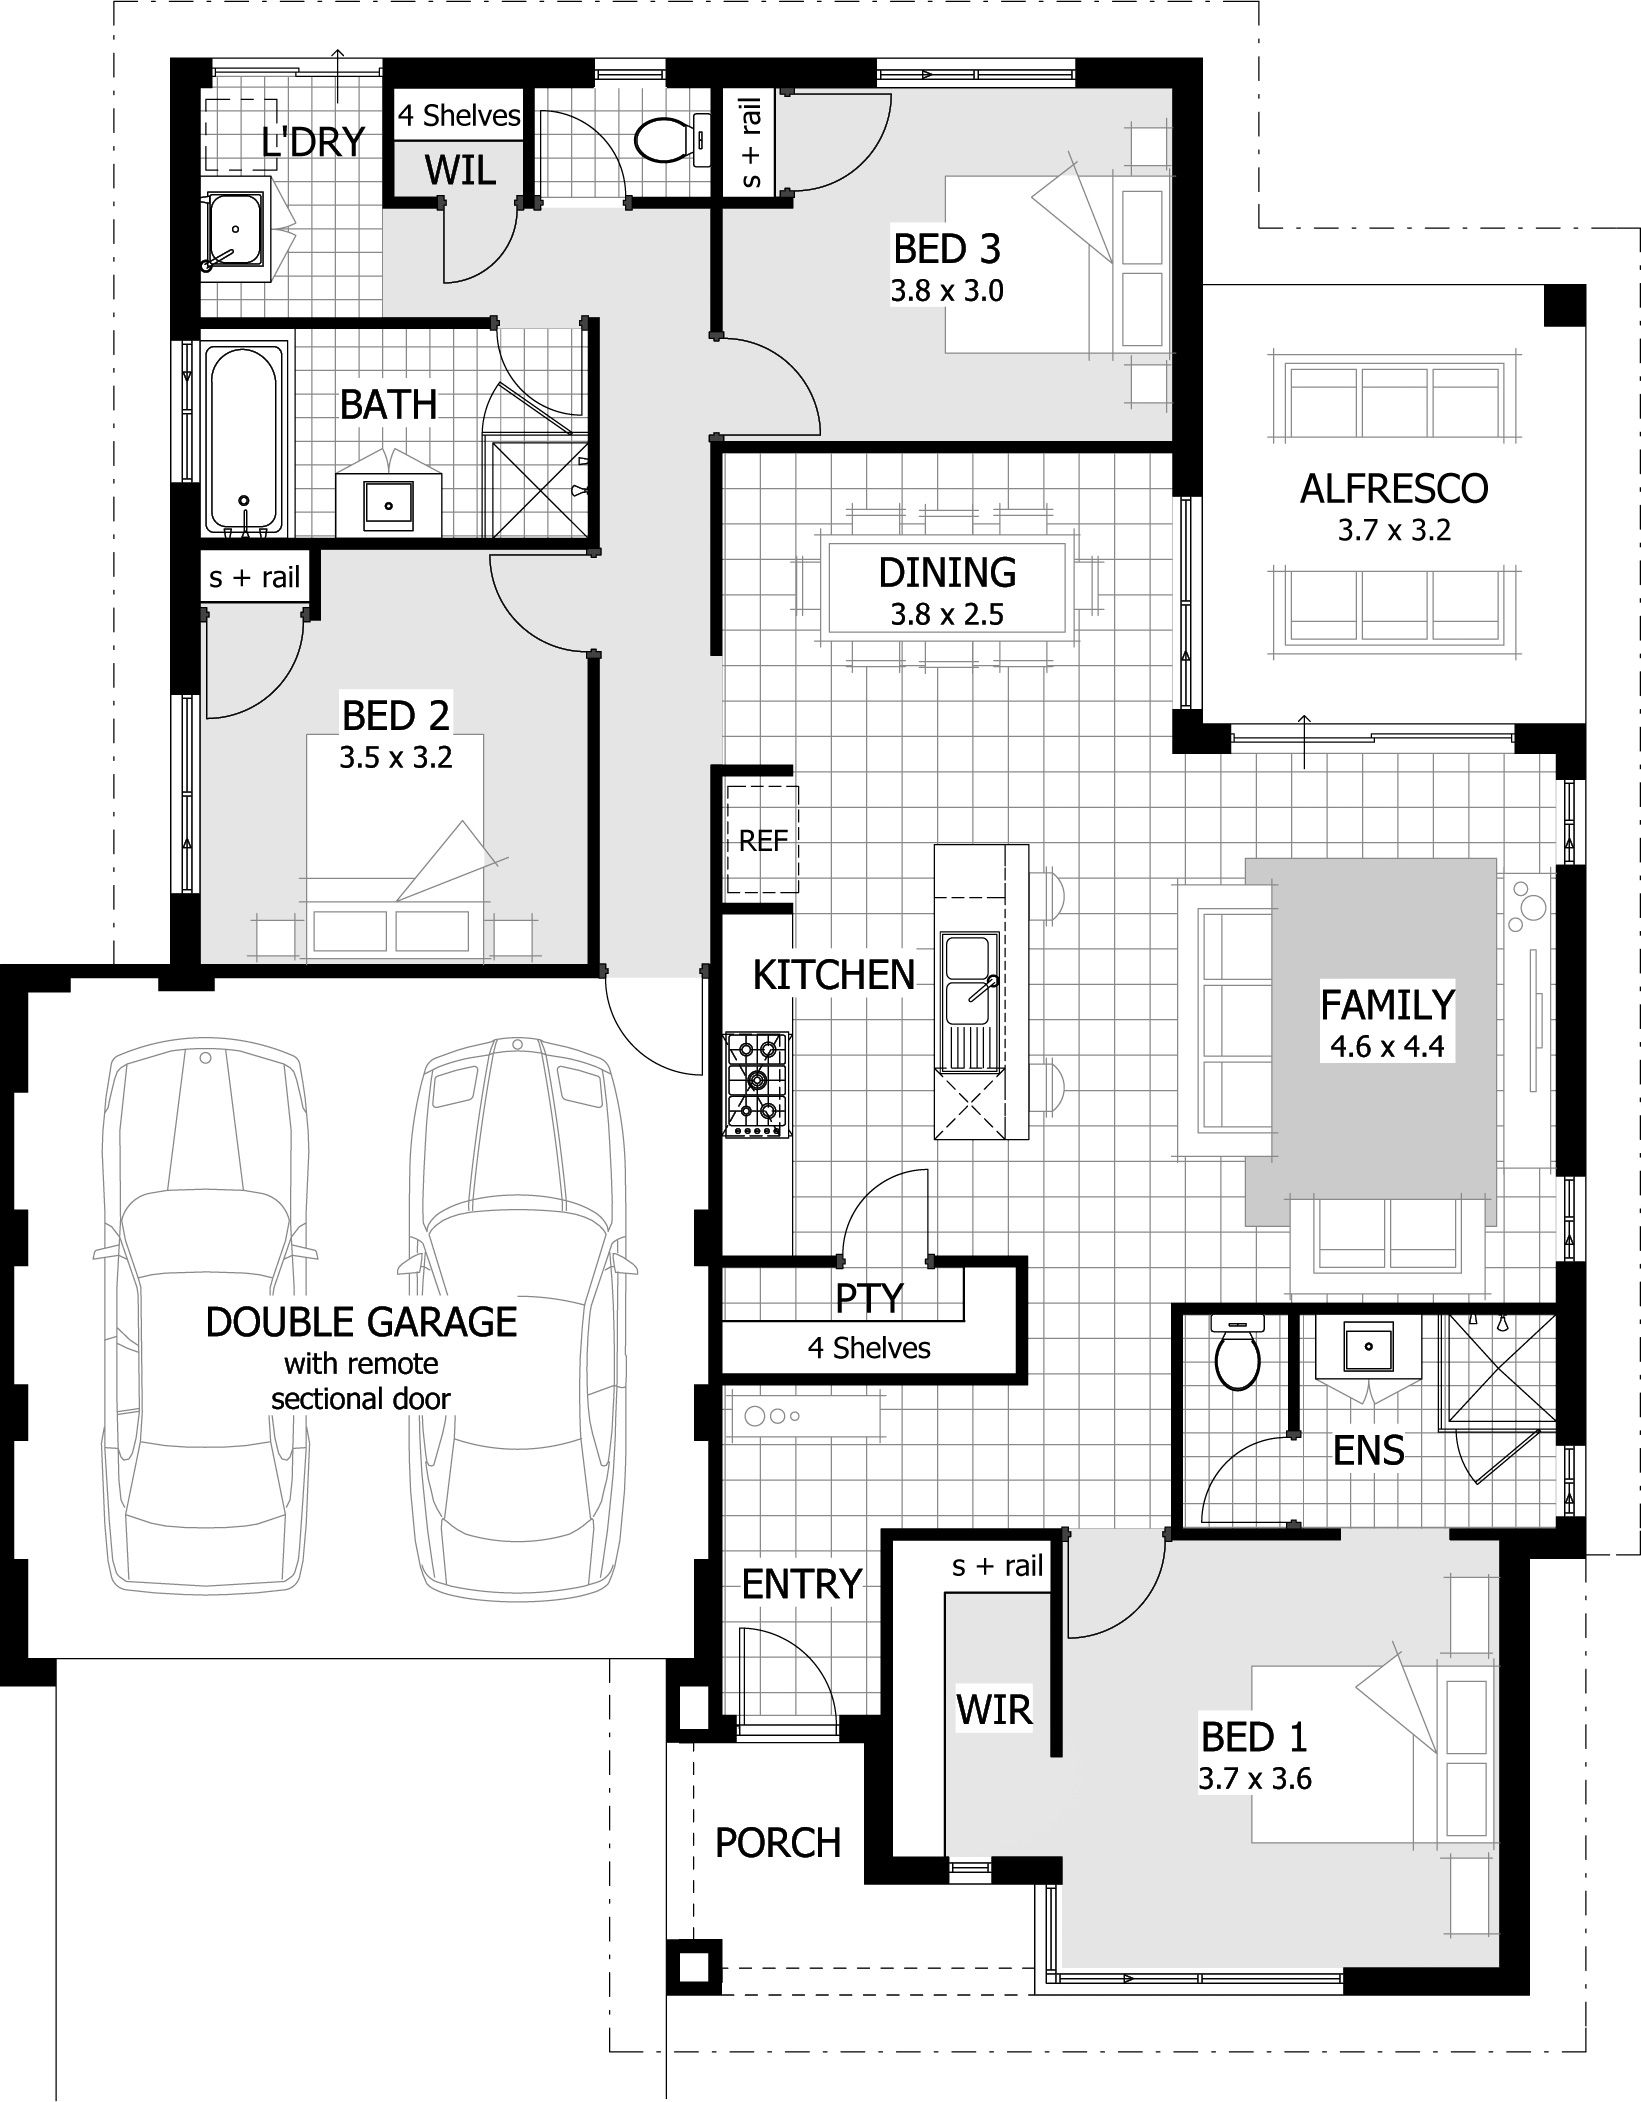 3 Bedroom House Floor Plan 3 bedroom ranch house plans with basement lafayette indianapolis indiana anderson muncie add third stall garage and make all bigger 1000 Images About House Plans On Pinterest Floor Plans House Plans And Timber Frame Houses